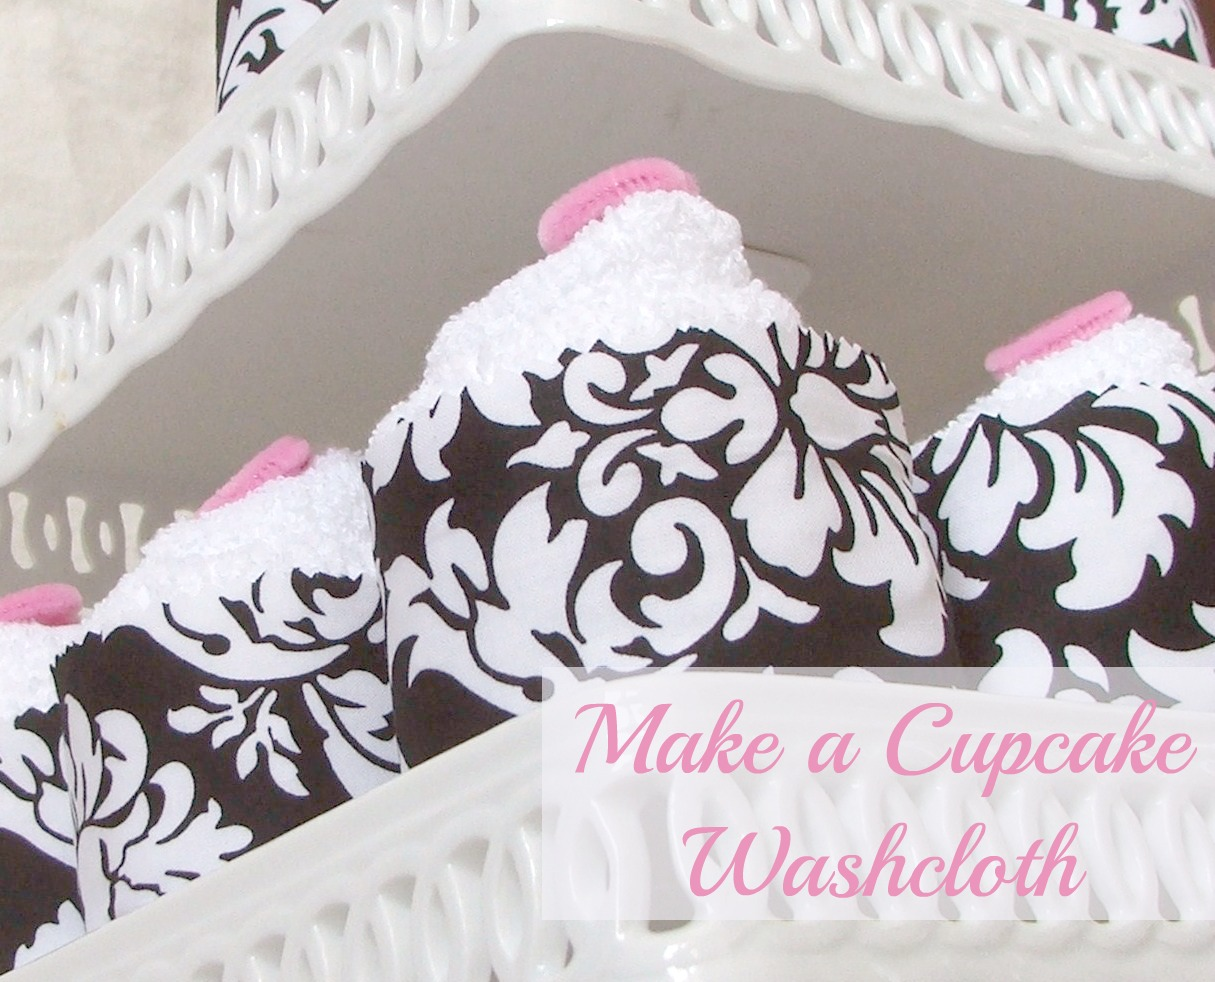 Cupcake Washcloth Video Tutorial Cleverly Inspired